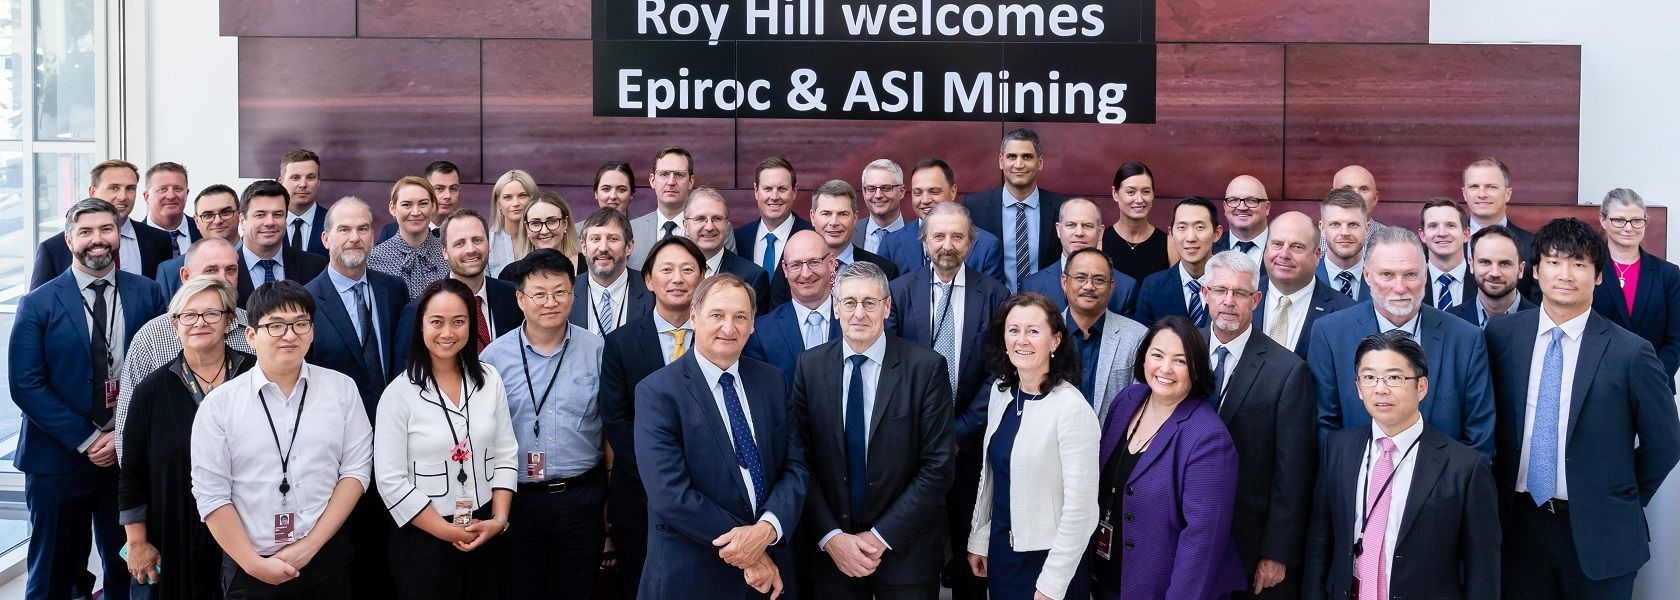 Epiroc wants to be mining tech leader